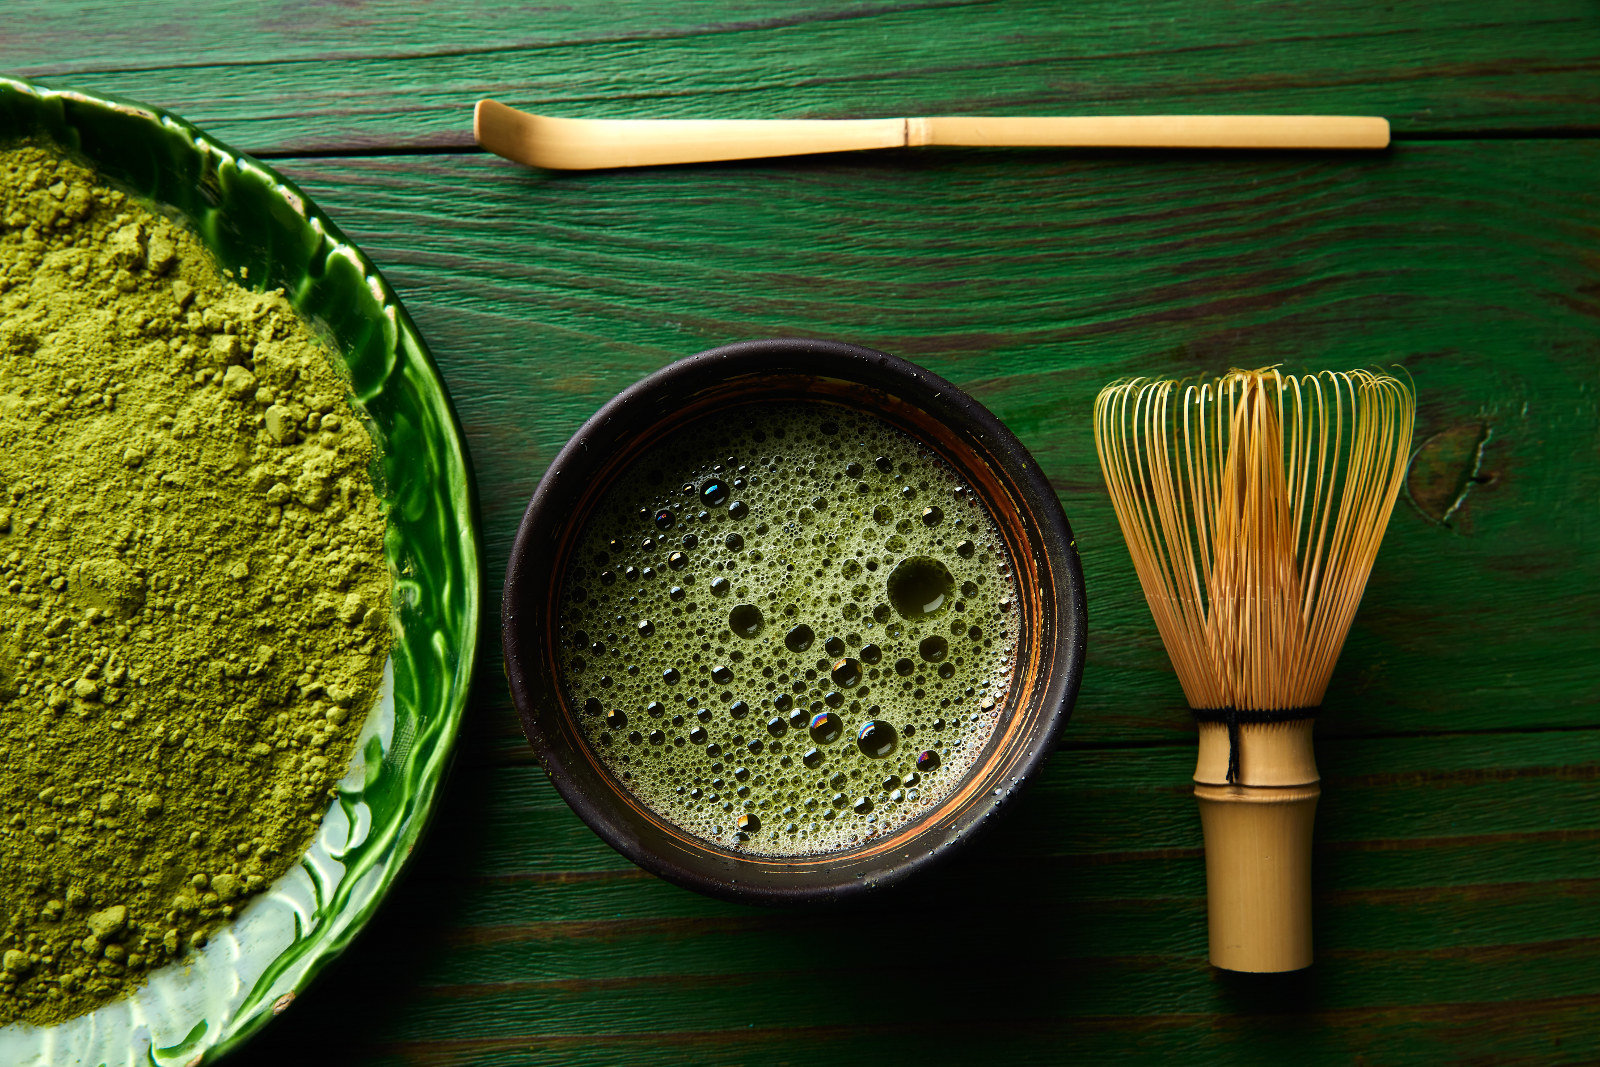 Matcha tea powder bamboo whisk chasen and spoon for making Japanese green tea